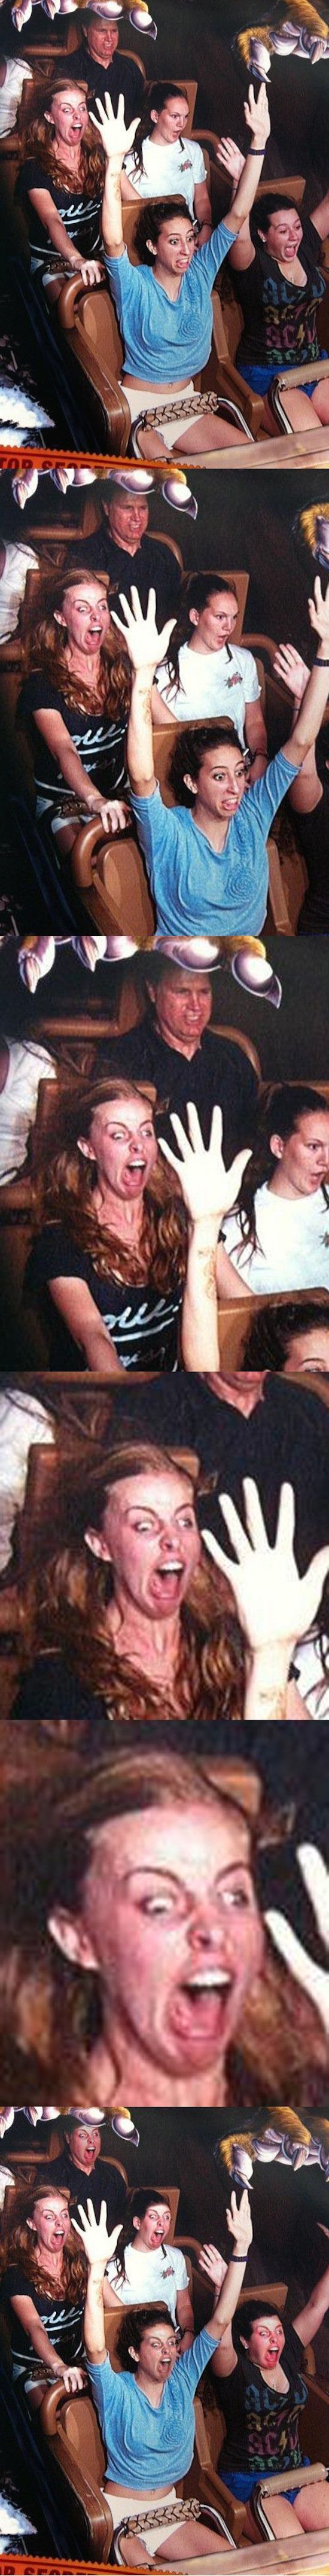 theme park ride drop face swap, funny faceswap, best faceswap, faceswaps, best funny pictures, funny pics, funny photos, funny pictures, funny vids, the best funny pictures, really funny photos, funny photos of animals, funny photos 2016, funny photos 2017, funny photos 2018, funny photos 2019, funny pics 2016, funny pics 2017, funny pics 2018, funny pics 2019, funny pictures 2016, funny pictures 2017, funny pictures 2018, funny pictures 2019, funniest pics 2016, funniest pics 2017, funniest pics 2018, funniest pics 2019, funniest pictures 2016, funniest pictures 2017, funniest pictures 2018, funniest pictures 2019, funniest photos 2016, funniest photos 2017, funniest photos 2018, funniest photos 2019, where to find funny pictures, funny pictures which made everyone laugh, where funny pictures, where to download funny pictures, where to find funny pictures with captions, where to get funny pictures for instagram, where to find funny pictures to share, where to find funny pictures to share on facebook, where to see funny pictures, funny pictures for instagram, funny pictures for facebook, funny pictures for memes, funny pictures for wallpaper, funny pictures for him, funny pictures for her, funny pictures for friends, funny pictures for snapchat, funny pictures like uberhumor, funny pictures like 9gag, funny pictures like facebook, funny pictures like, funny pictures like ifunny, funny stuff like pictures, funny pictures to text, funny pictures to photoshop, funny pictures to send, funny pictures to caption, funny pictures to post, funny pictures to make someone feel better, funny pictures to put on facebook, funny pictures to make you laugh, funny pictures to make you smile, funny pictures to brighten your day, funny pictures to brighten someone's day, funny pictures with words, funny pictures with no words, funny pictures without captions, funny pictures with jokes, funny pictures with dogs, funny pictures with cats, funny pictures without words, funny pictures without text, where can I find funny photos, best photos ever, best photo ever,